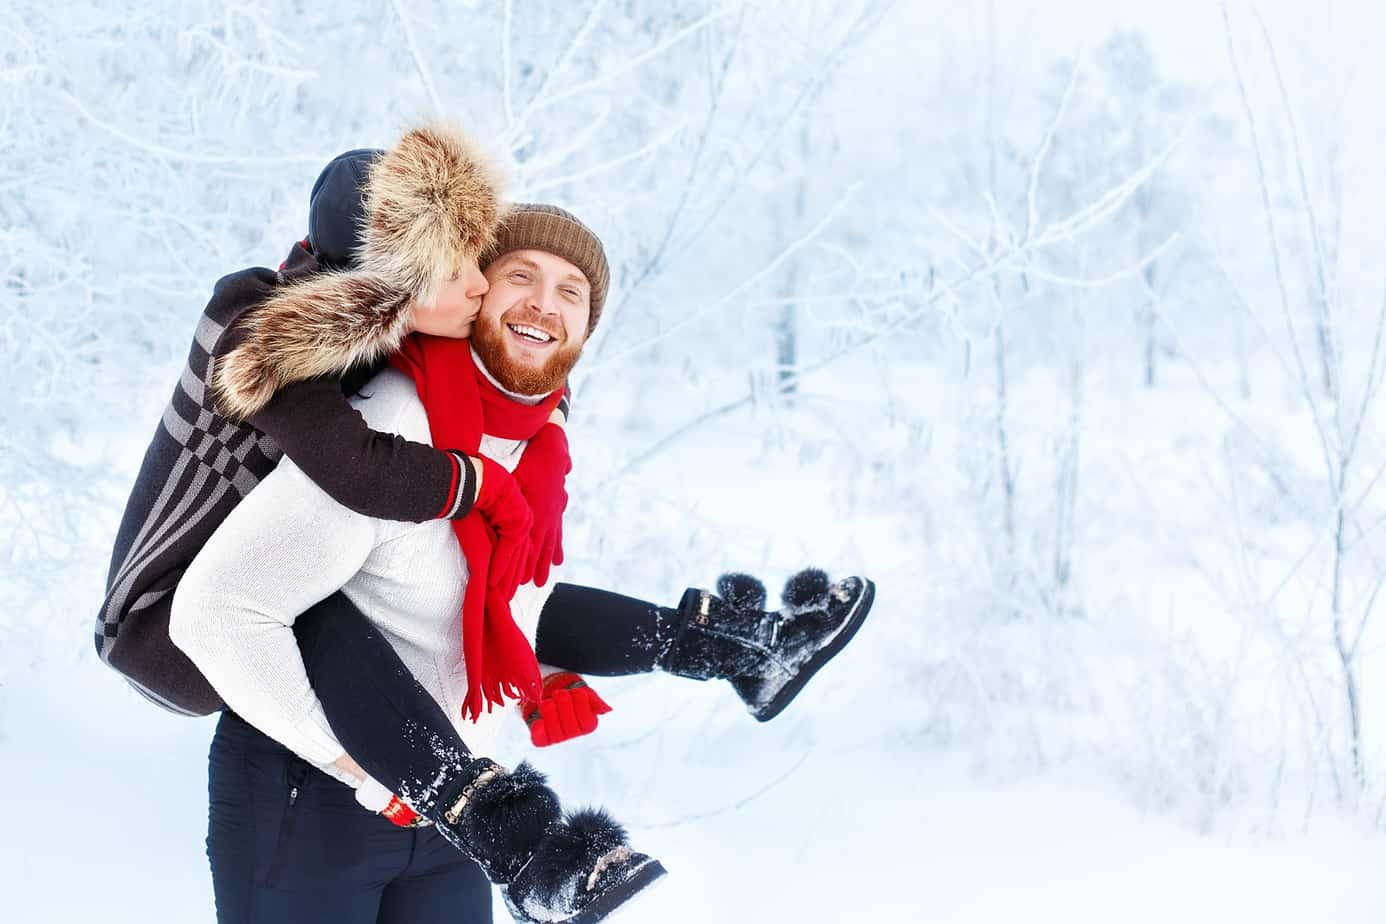 loving texts for him header image - Happy winter couple. Man giving woman piggyback ride on winter vacation in snowy forest. Winter fun couple playful together outdoor. Valentine's Day and love concept. Girl kisses man in winter forest